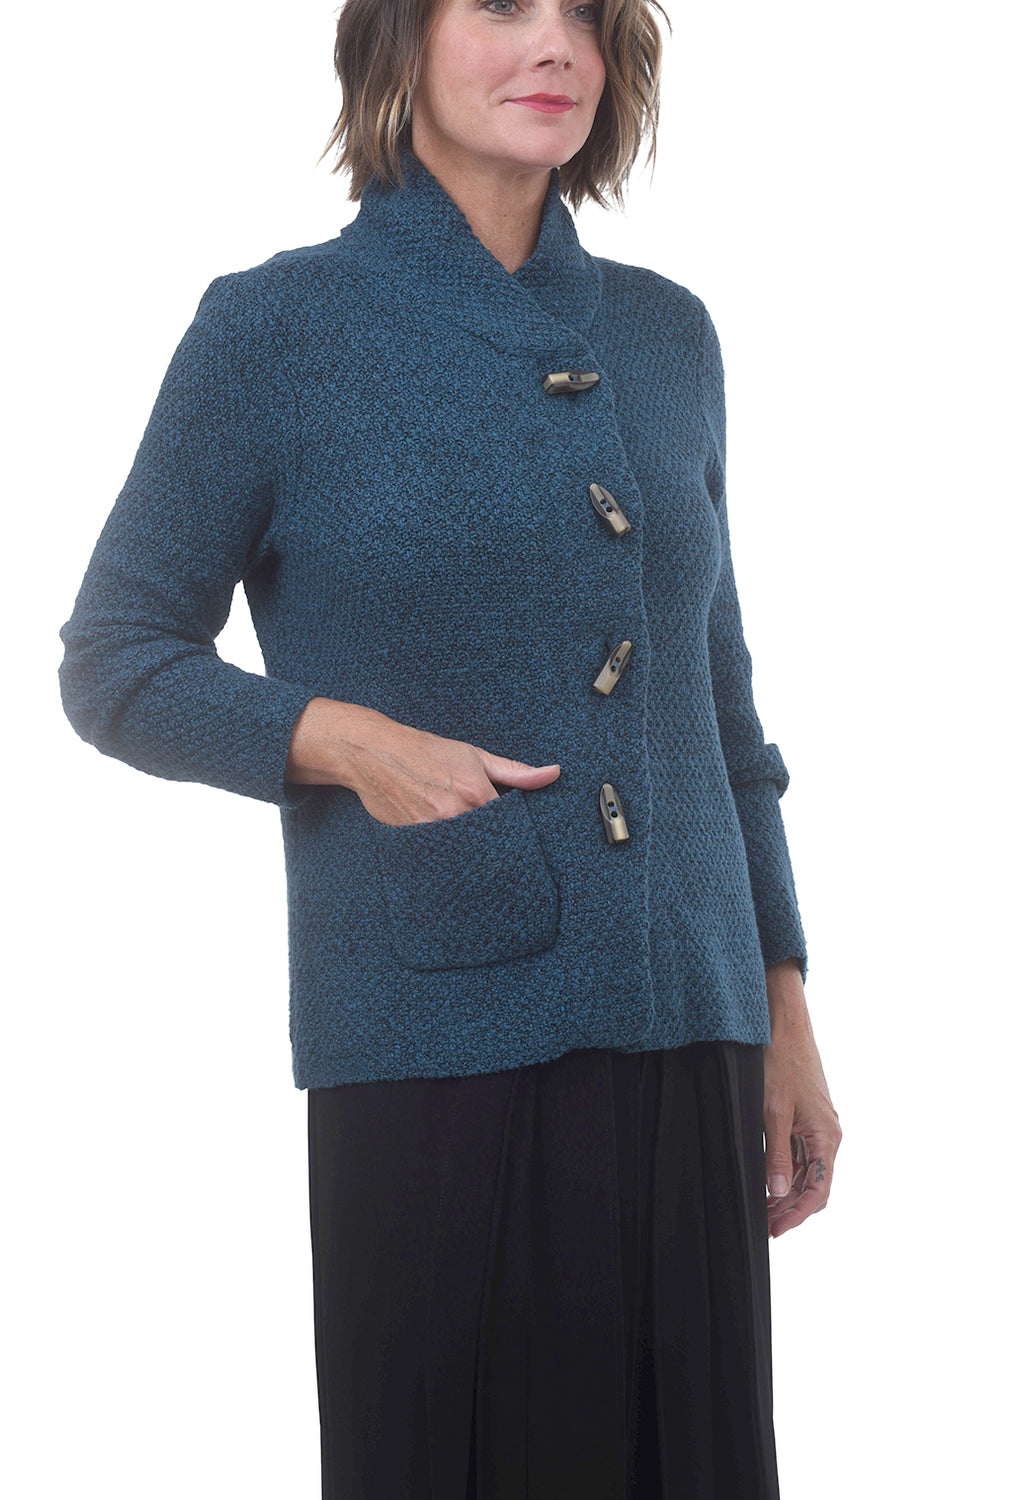 Horn-Button Cardie Jacket, Teal